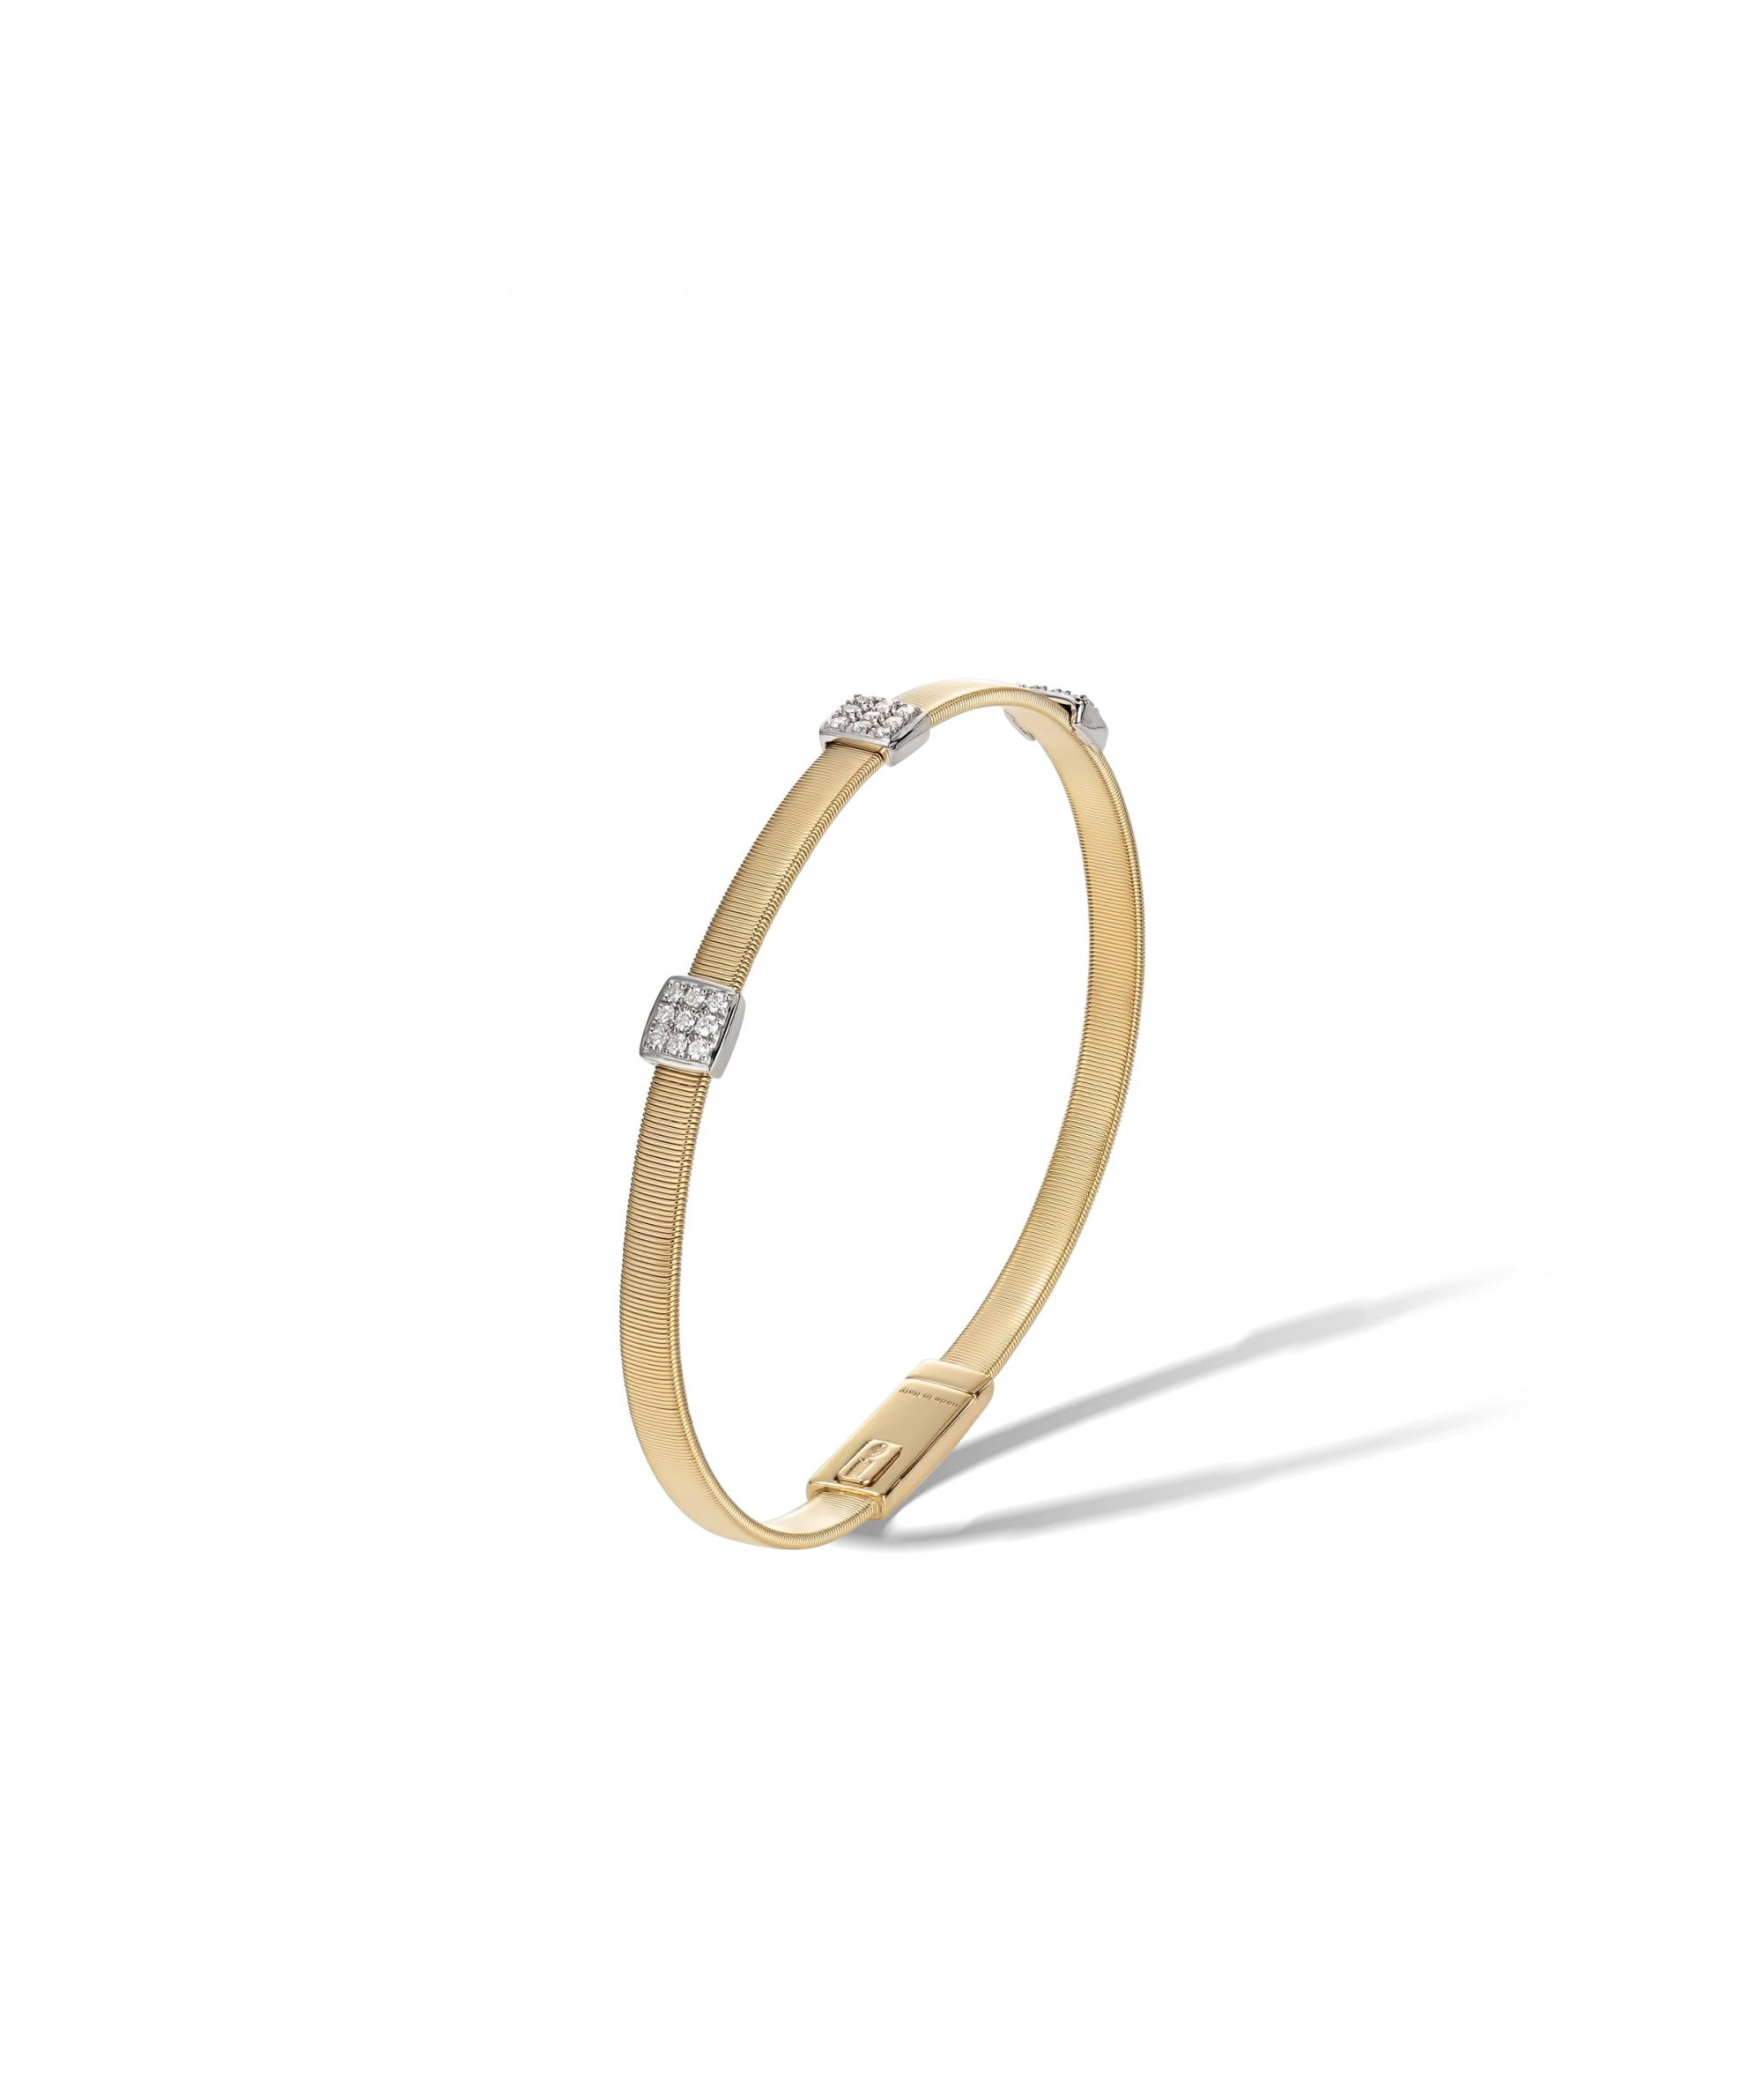 Masai Bracelet in 18k Yellow Gold with 3 Pave Diamond Stations Single Strand - Orsini Jewellers NZ